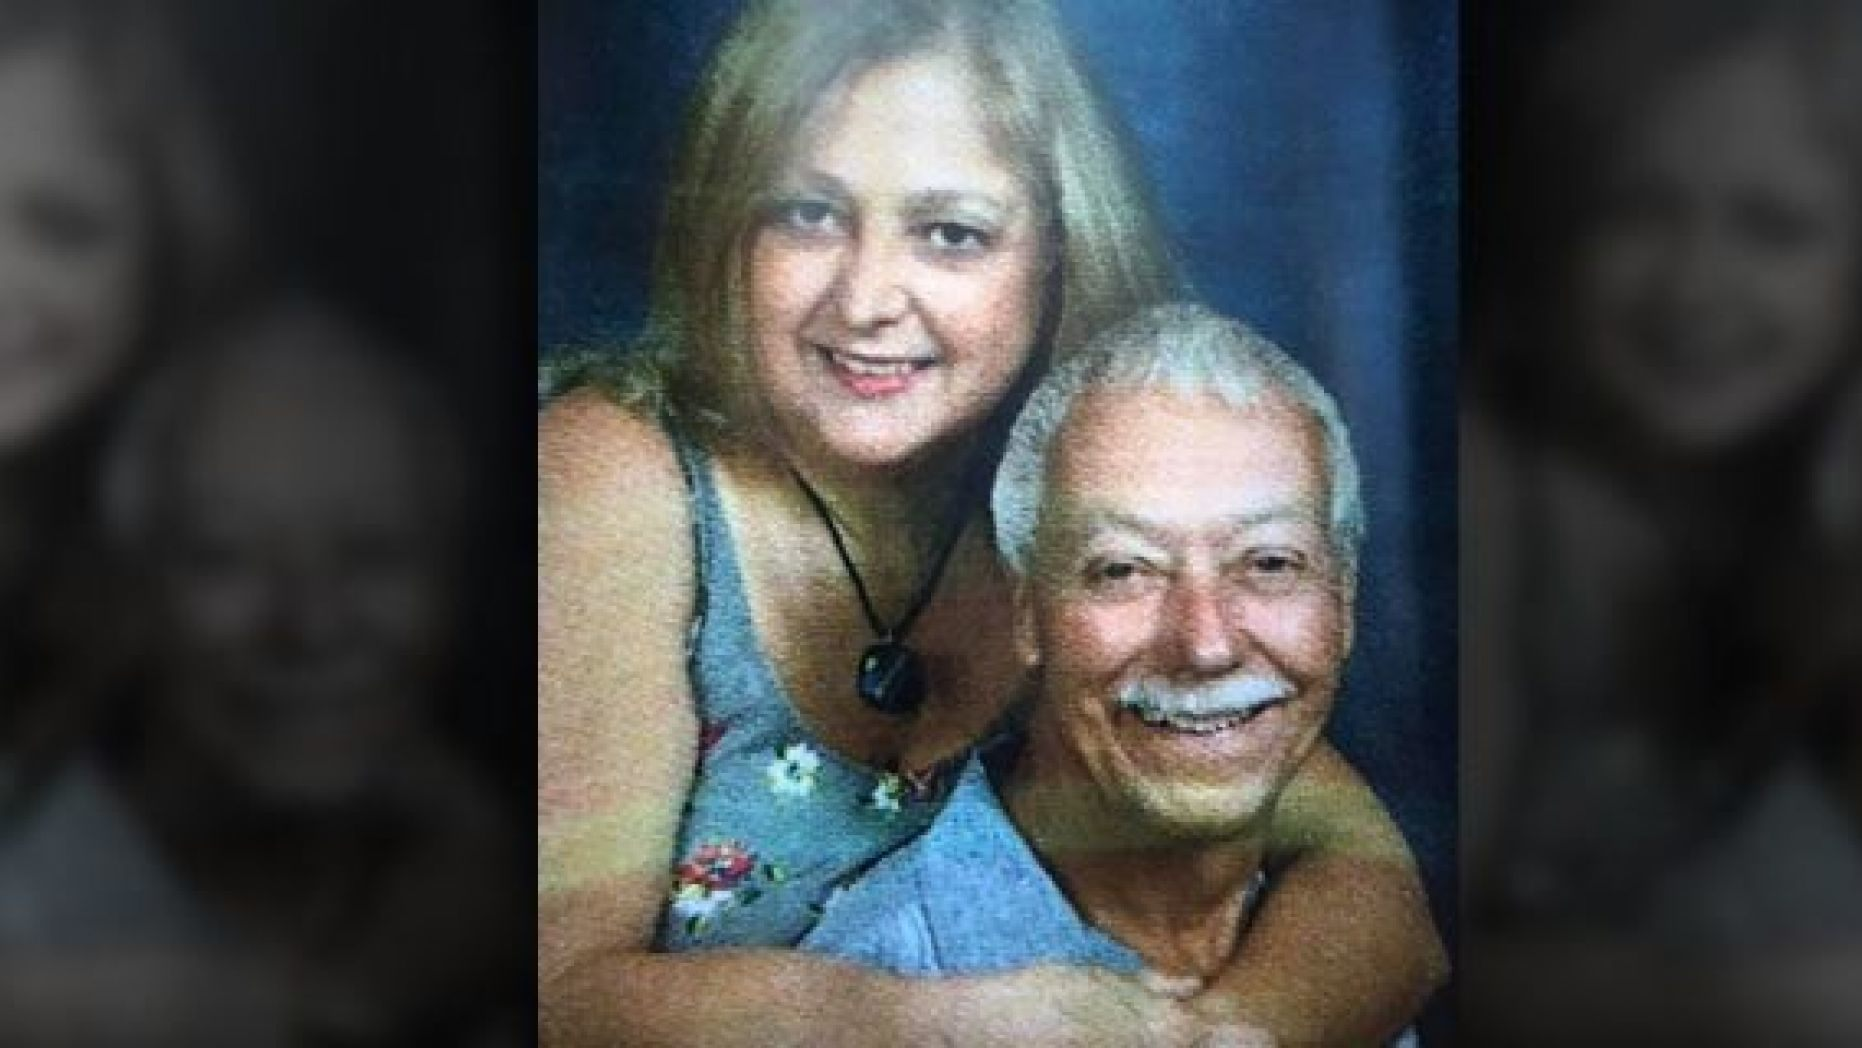 Lois Ladd, 68, and Michael Ladd, 79, were found dead in their home in Edwardsville, Illinois on Monday, police said.